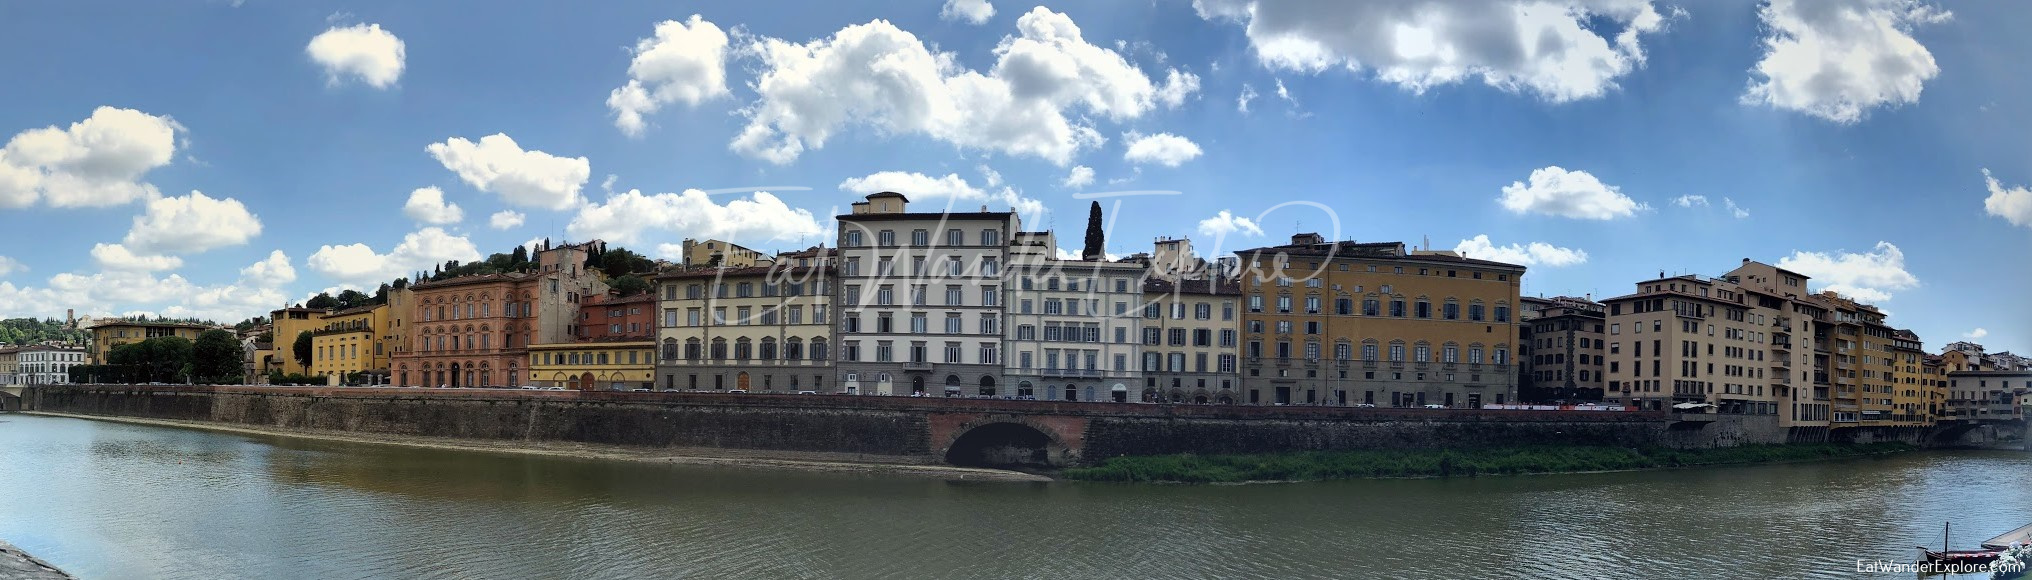 CLICK HERE FOR 113 MORE PHOTOS FROM FLORENCE!!!  (Membership Required)